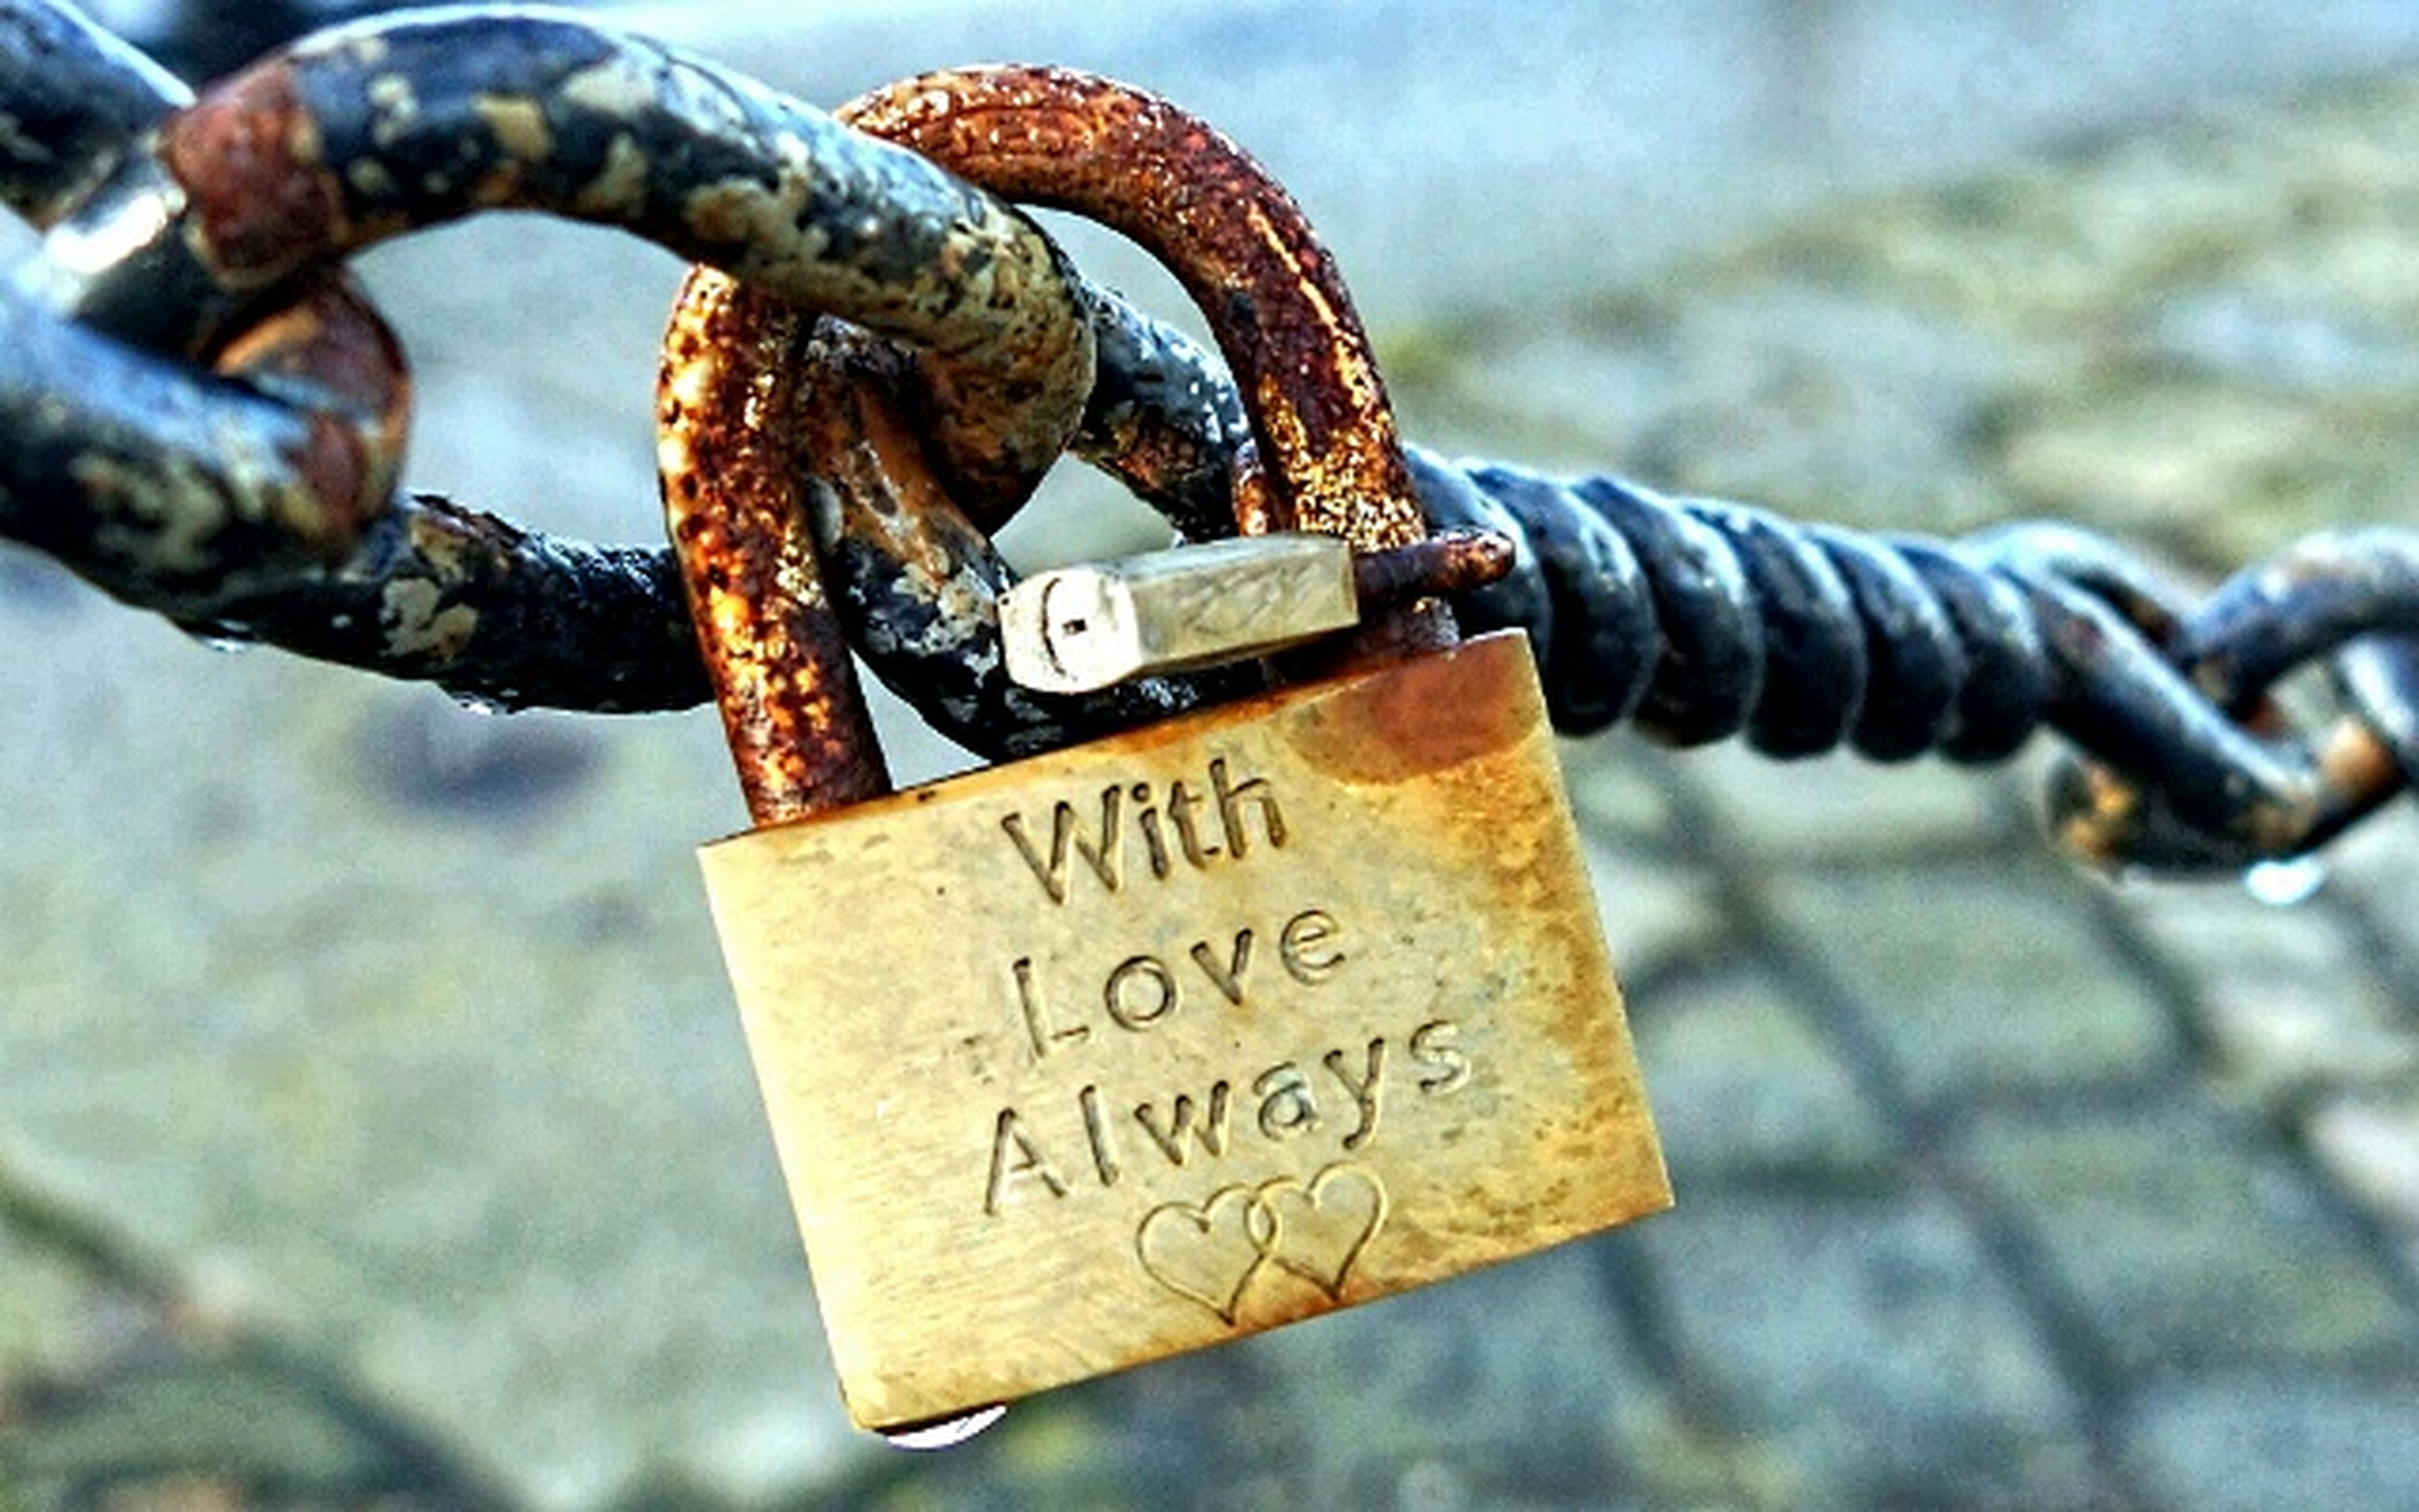 metal, padlock, rusty, focus on foreground, close-up, security, safety, chain, lock, protection, metallic, text, communication, fence, connection, strength, love, old, day, western script